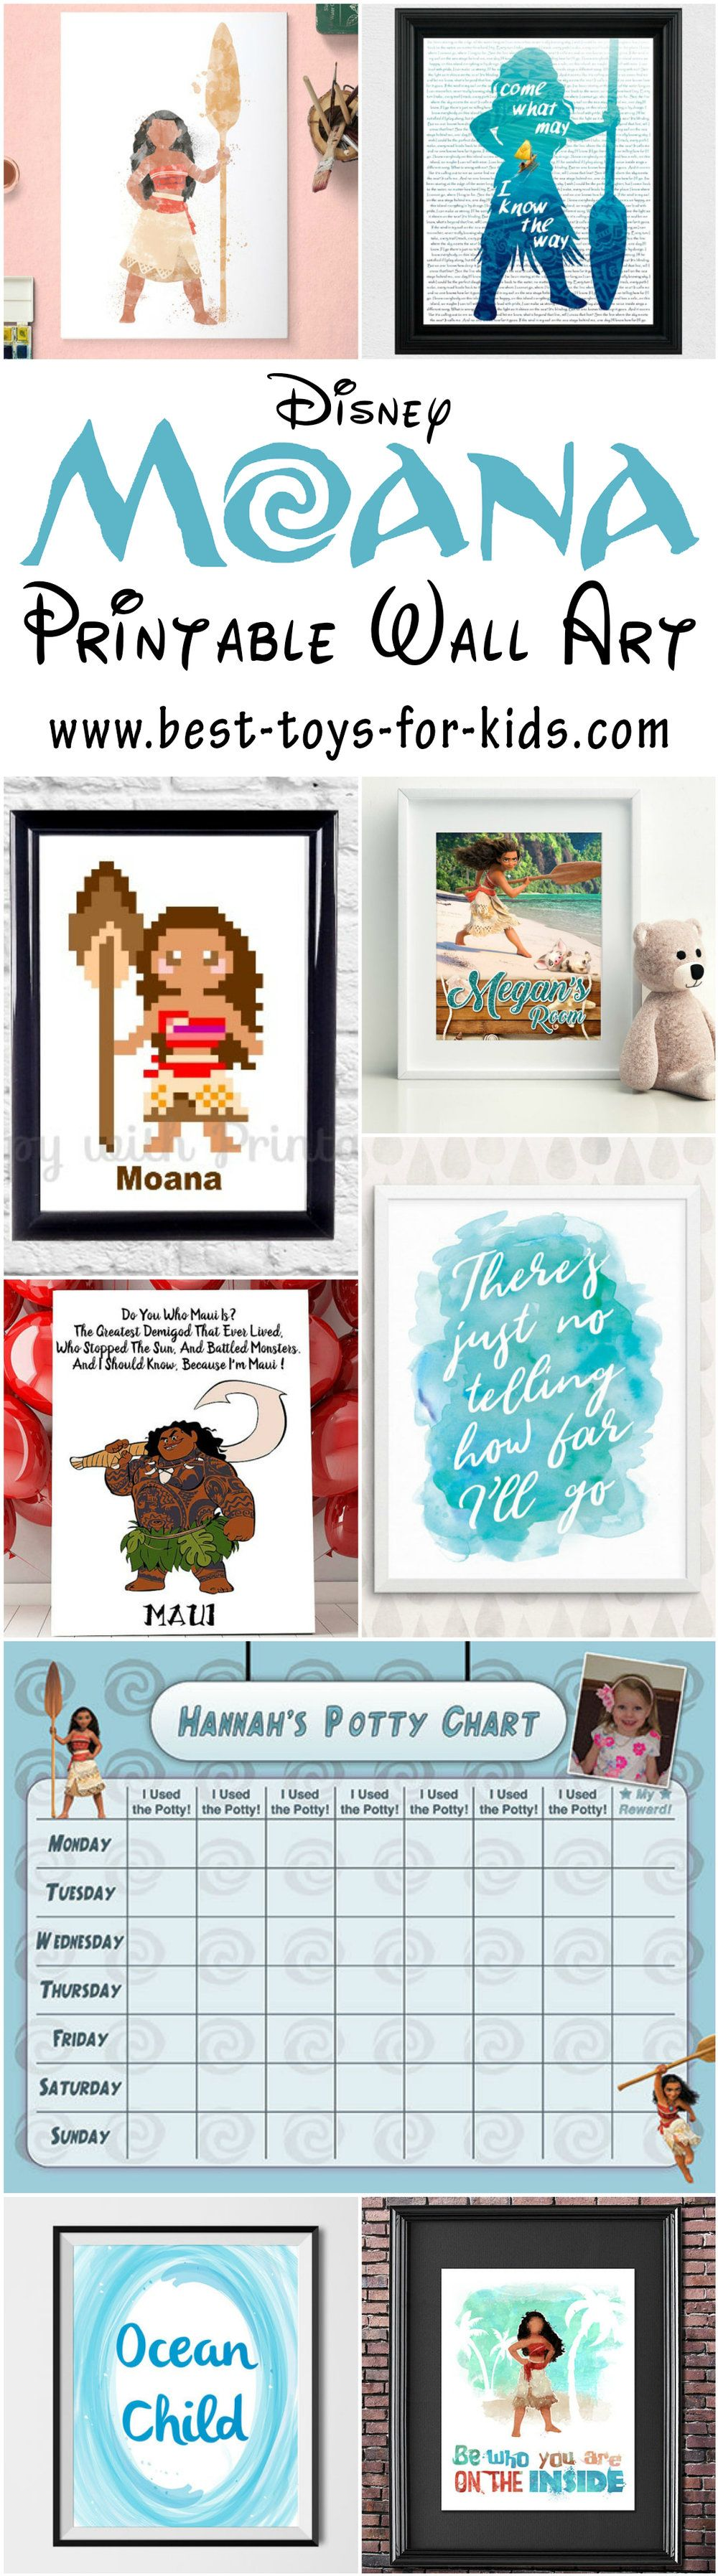 Eye Catching Disney Moana Printable Art Pictures and Wall Decor For ...